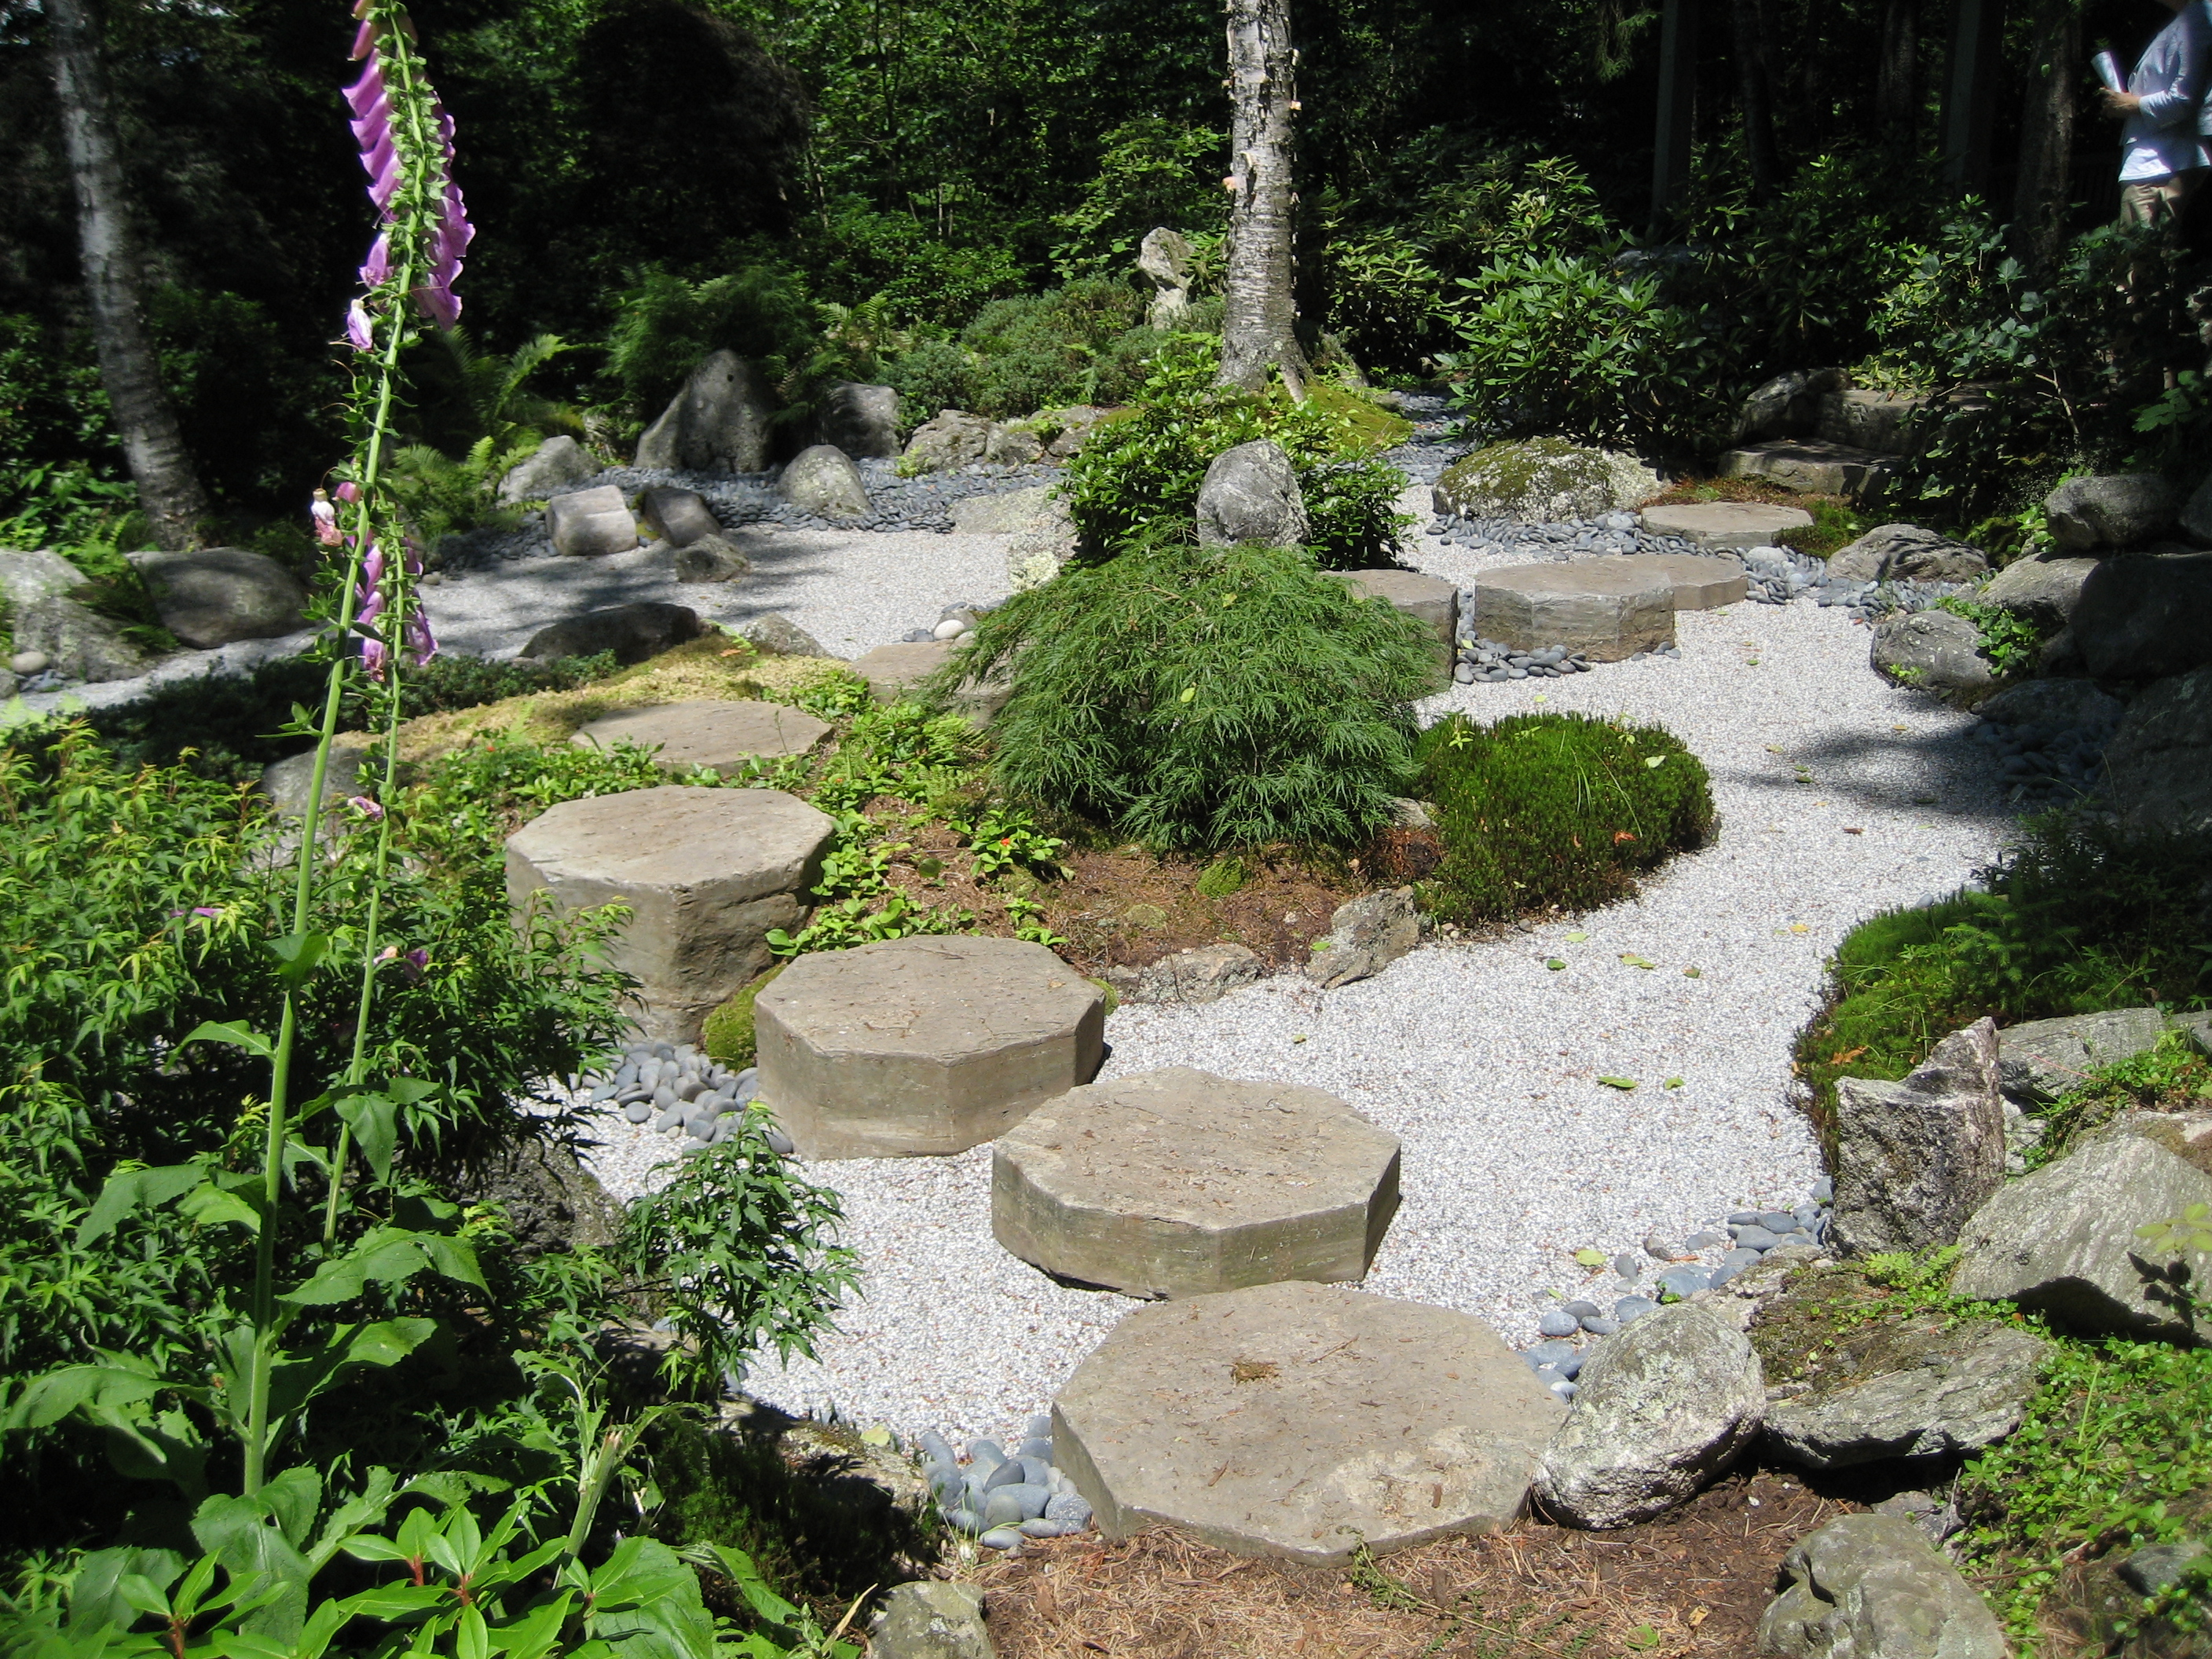 How Does Your Garden Grow? A Little Inspiration and a Tour ...